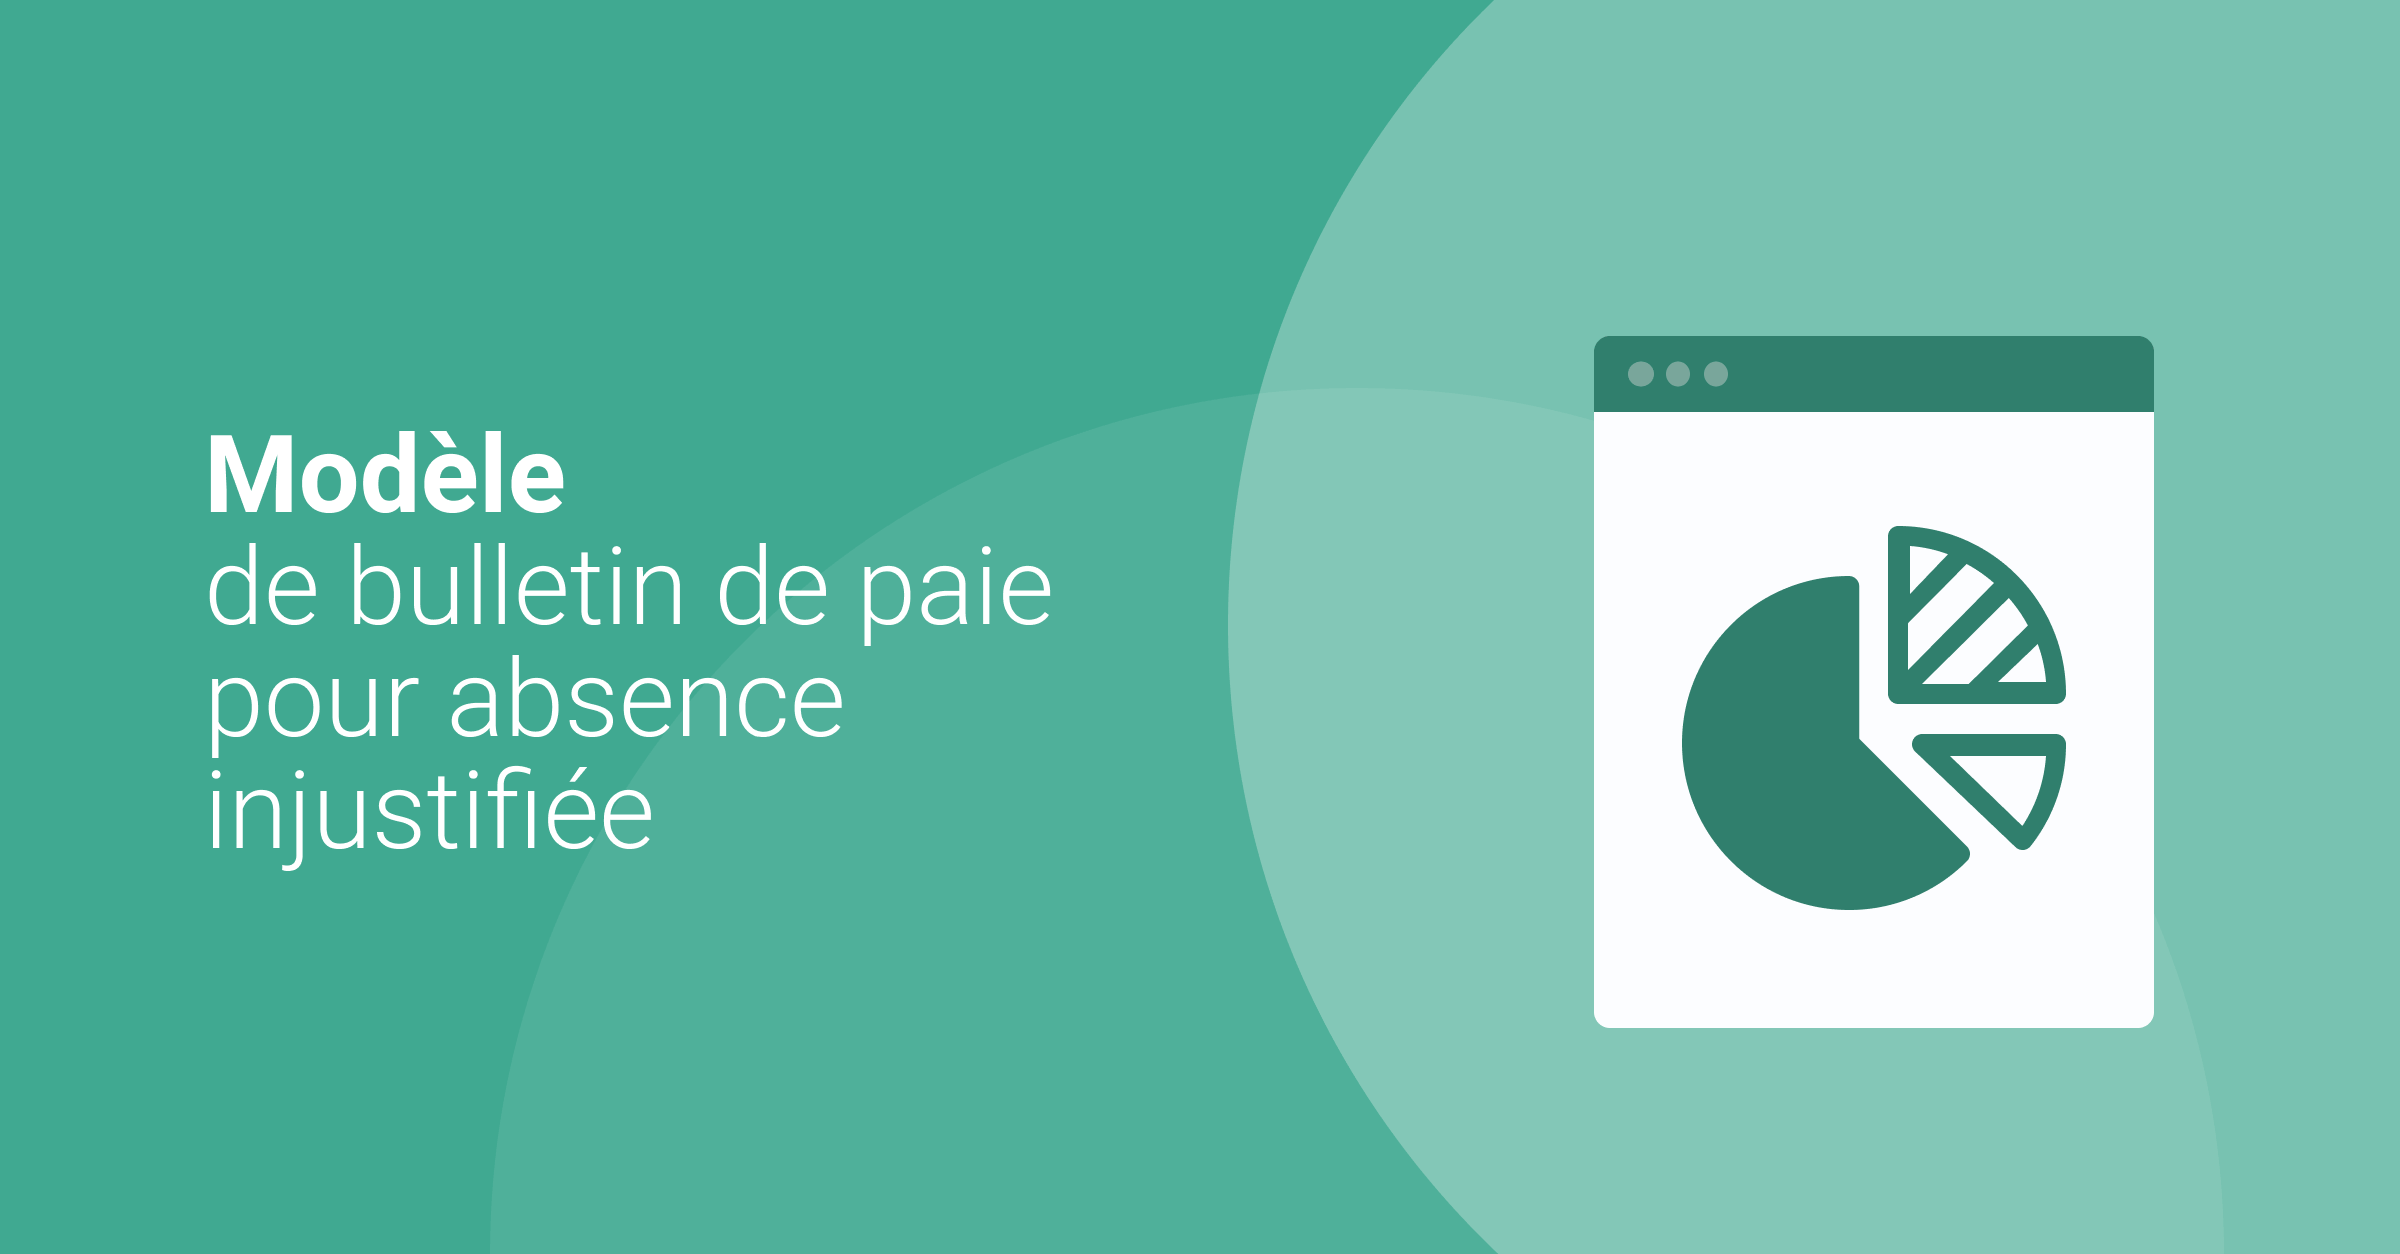 Modele de bulletin de paie pour absence injustifiée